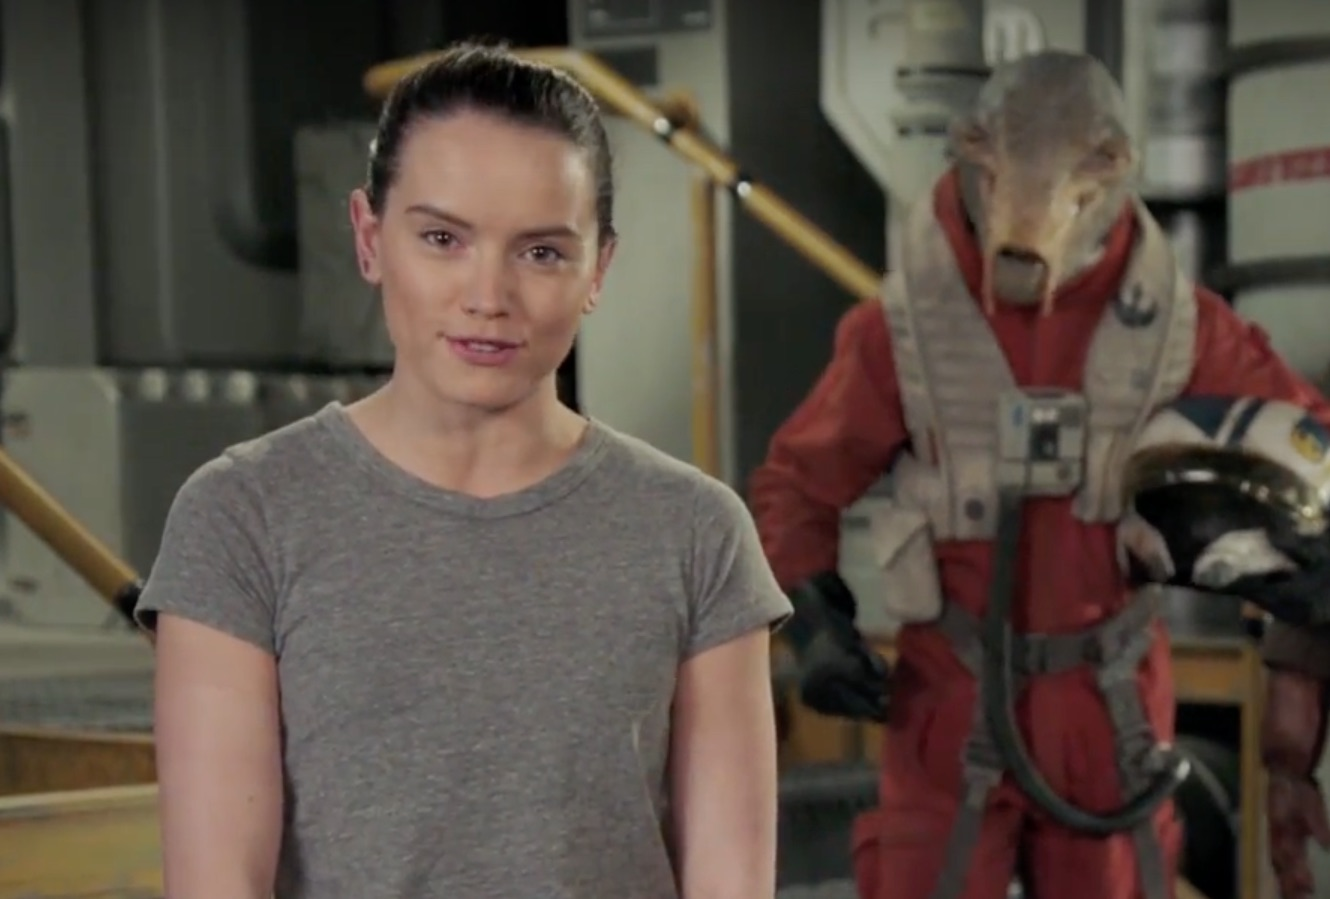 Celebrate Star Wars Day with a video message from Daisy Ridley, Force For Change and a few friends from a galaxy far, far away. May the 4th be with you!